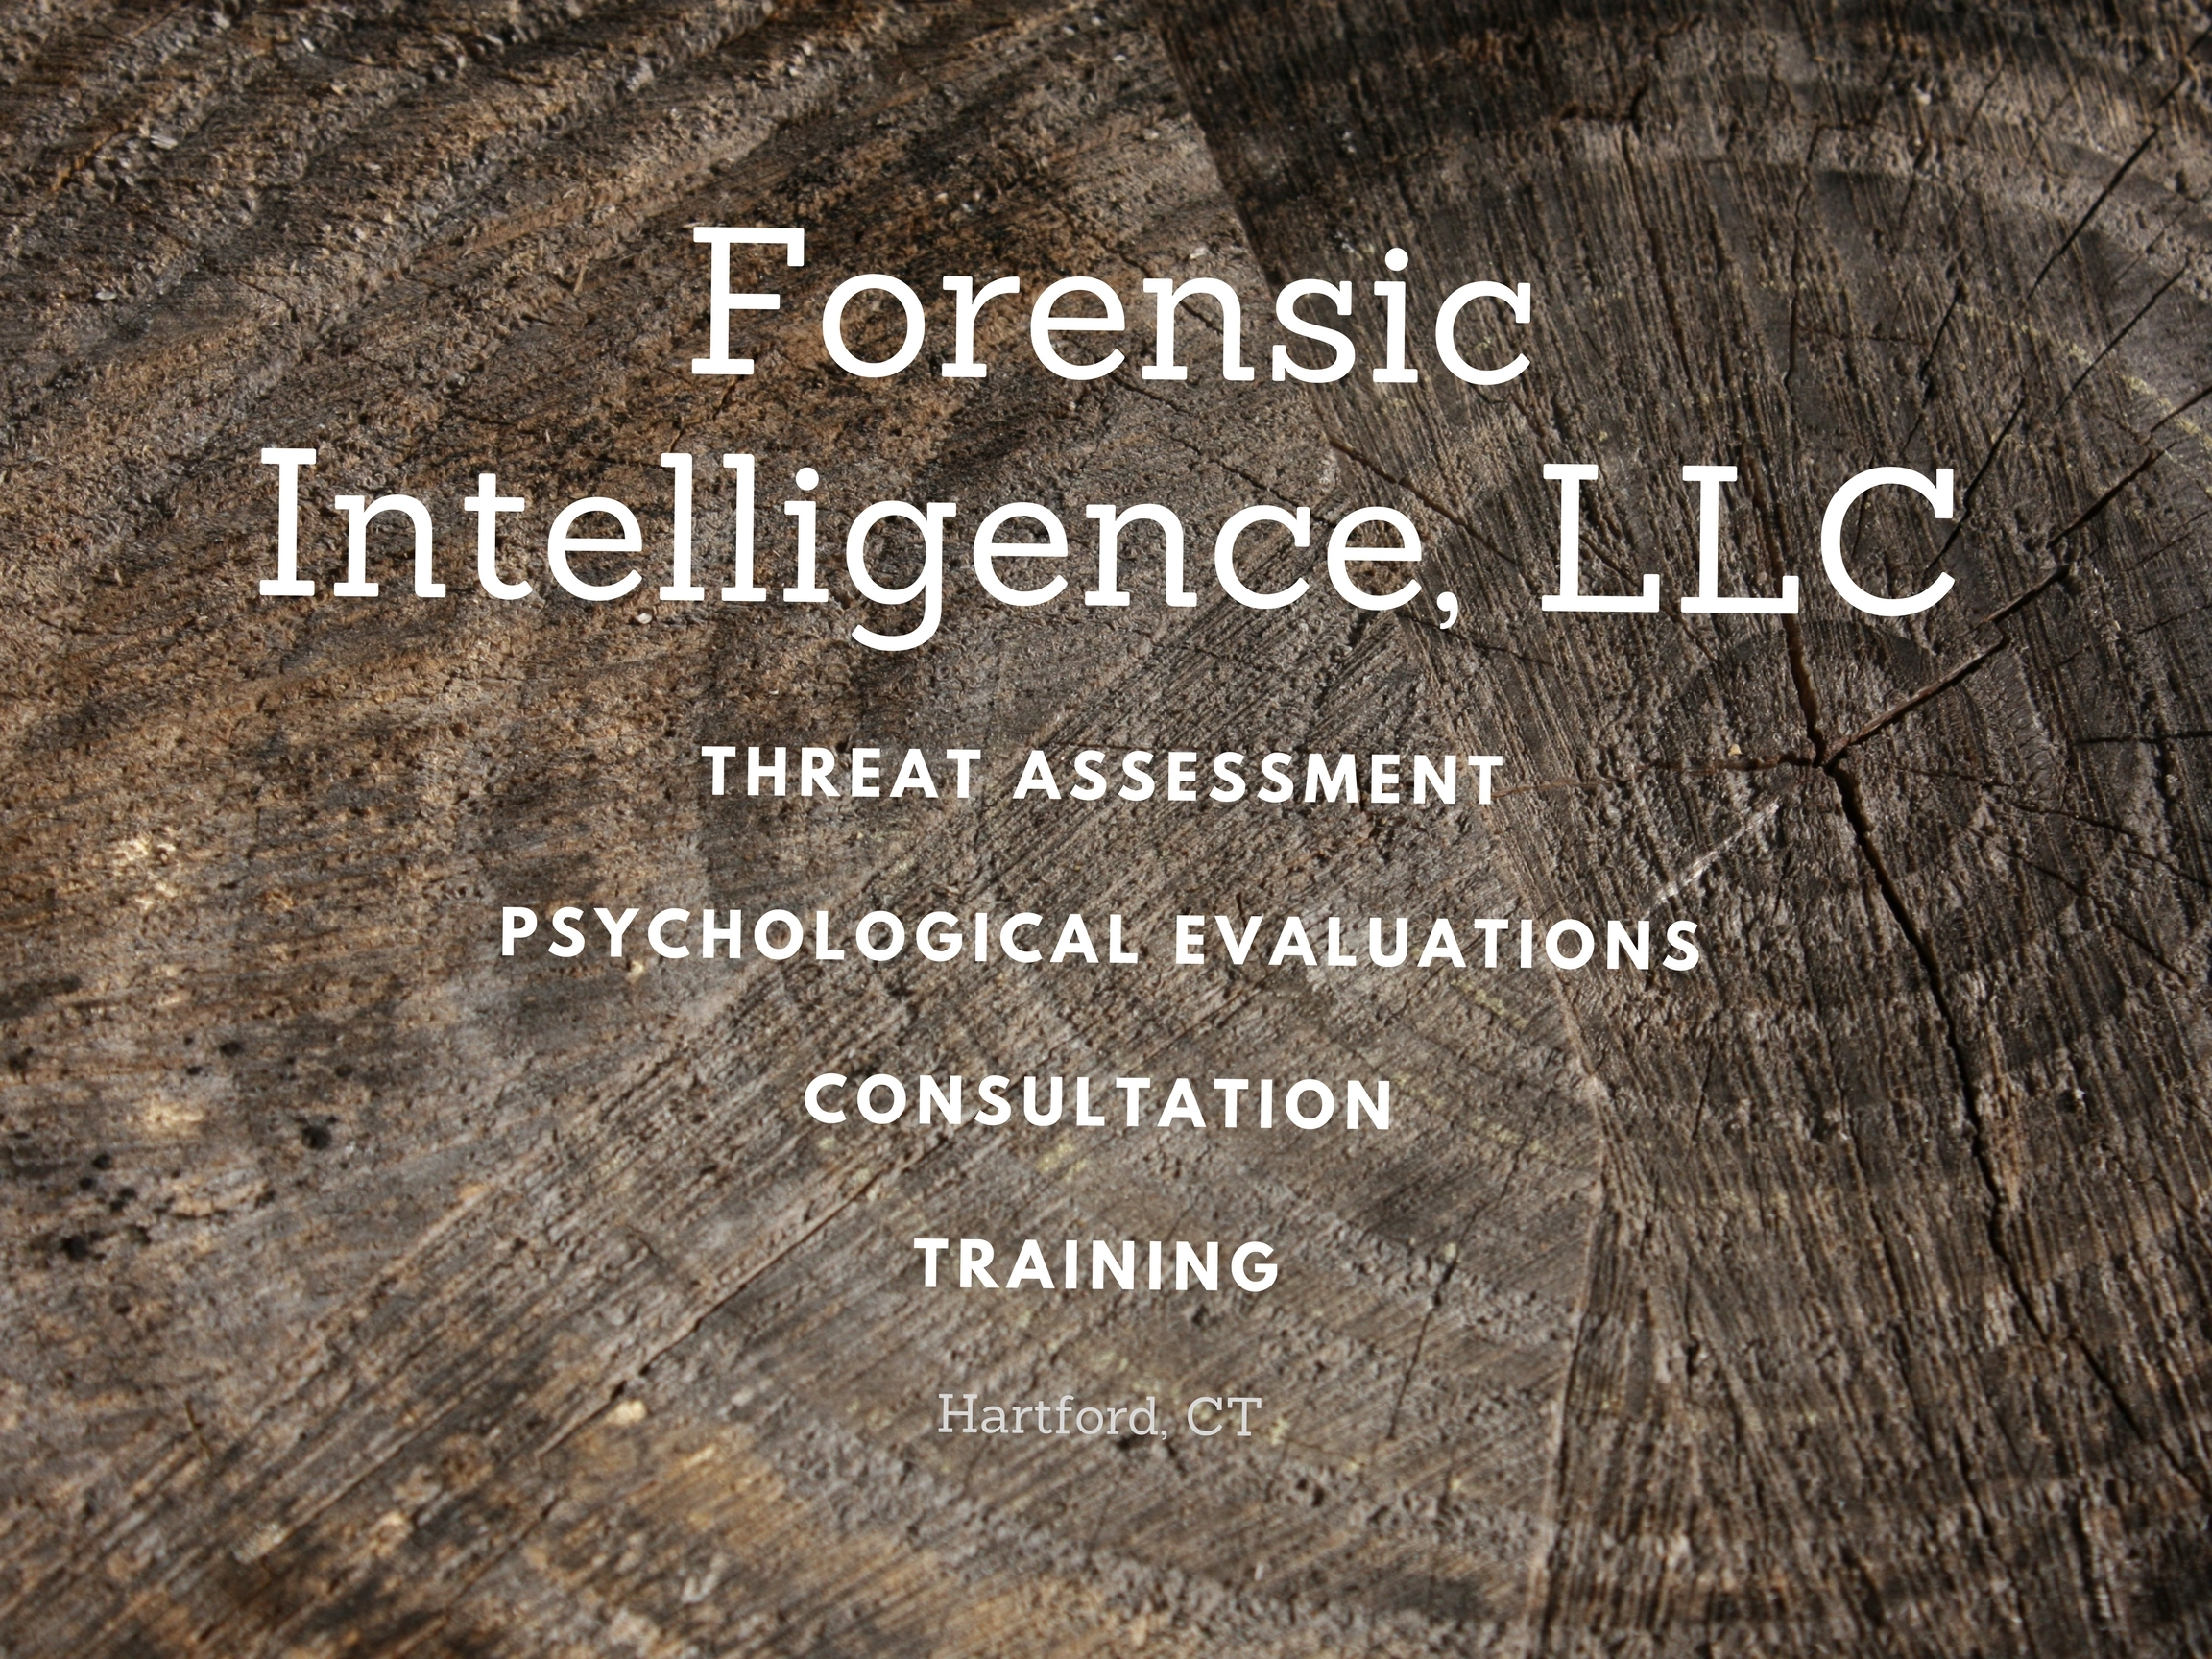 Forensic Intelligence, LLC